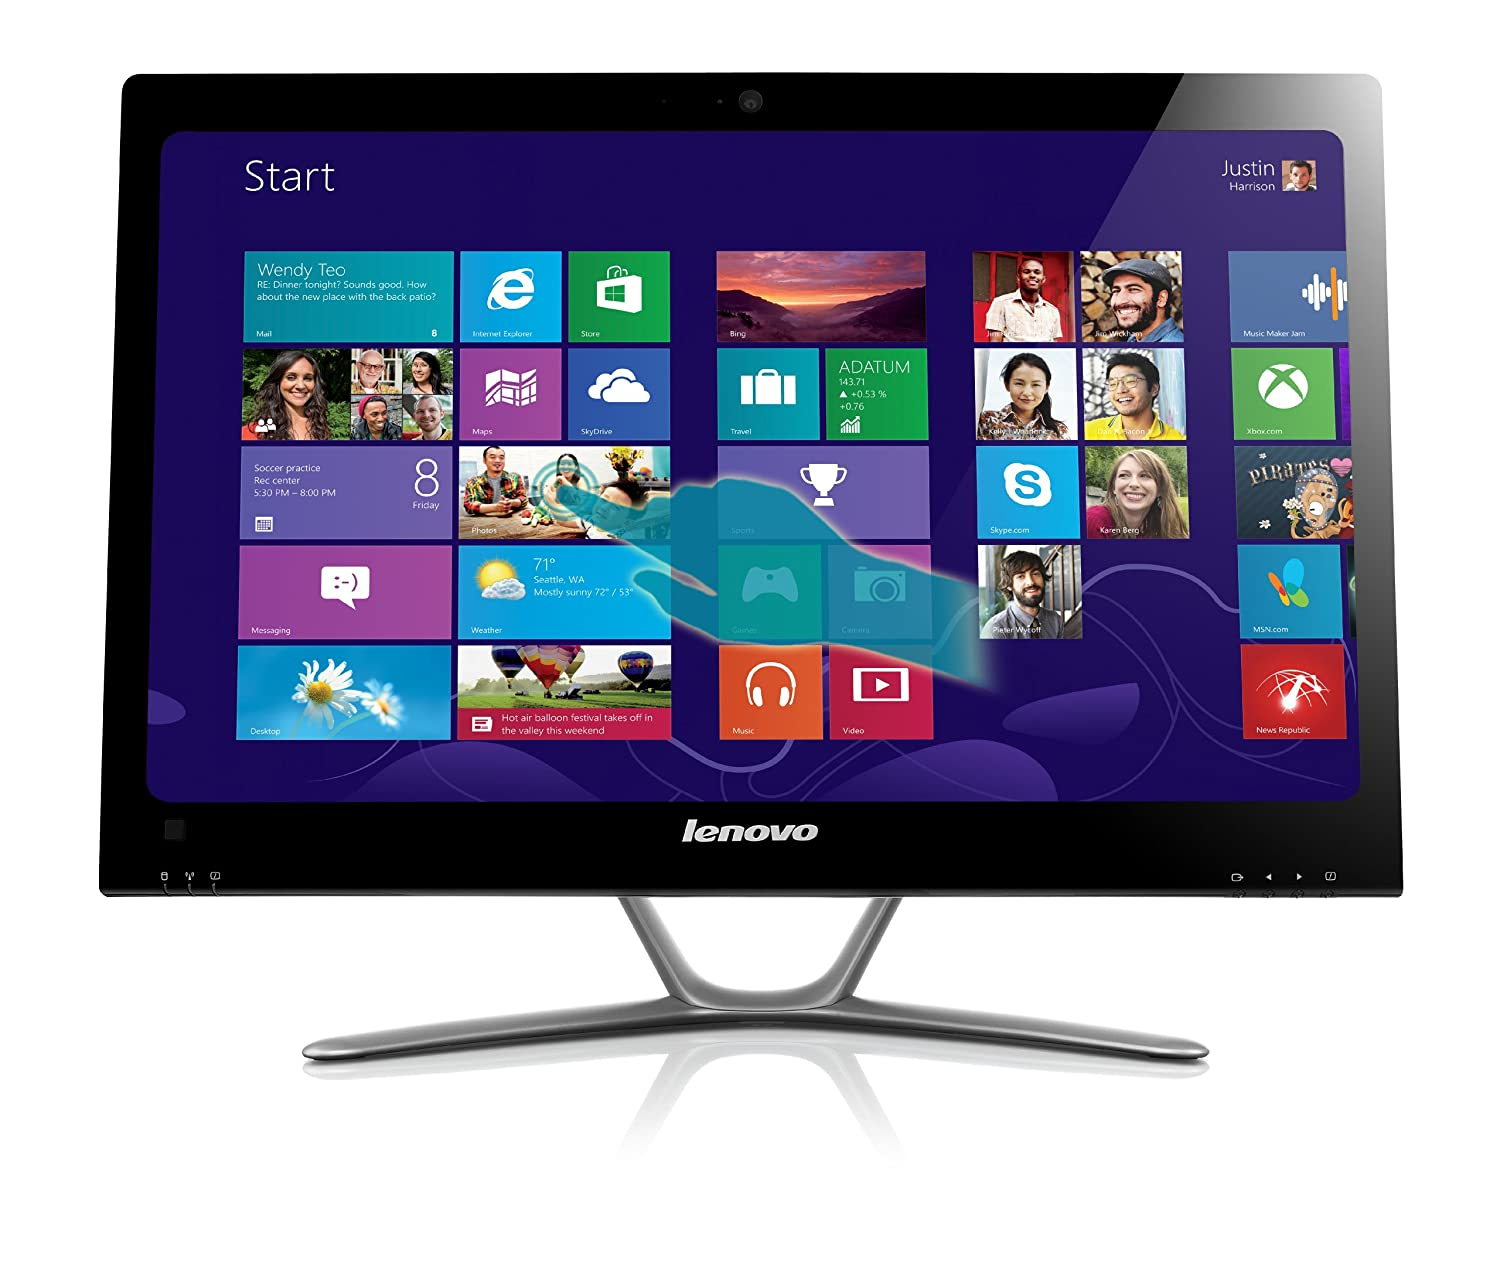 Lenovo 57315616 C440 21.5-Inch All-In-One Touchscreen Desktop